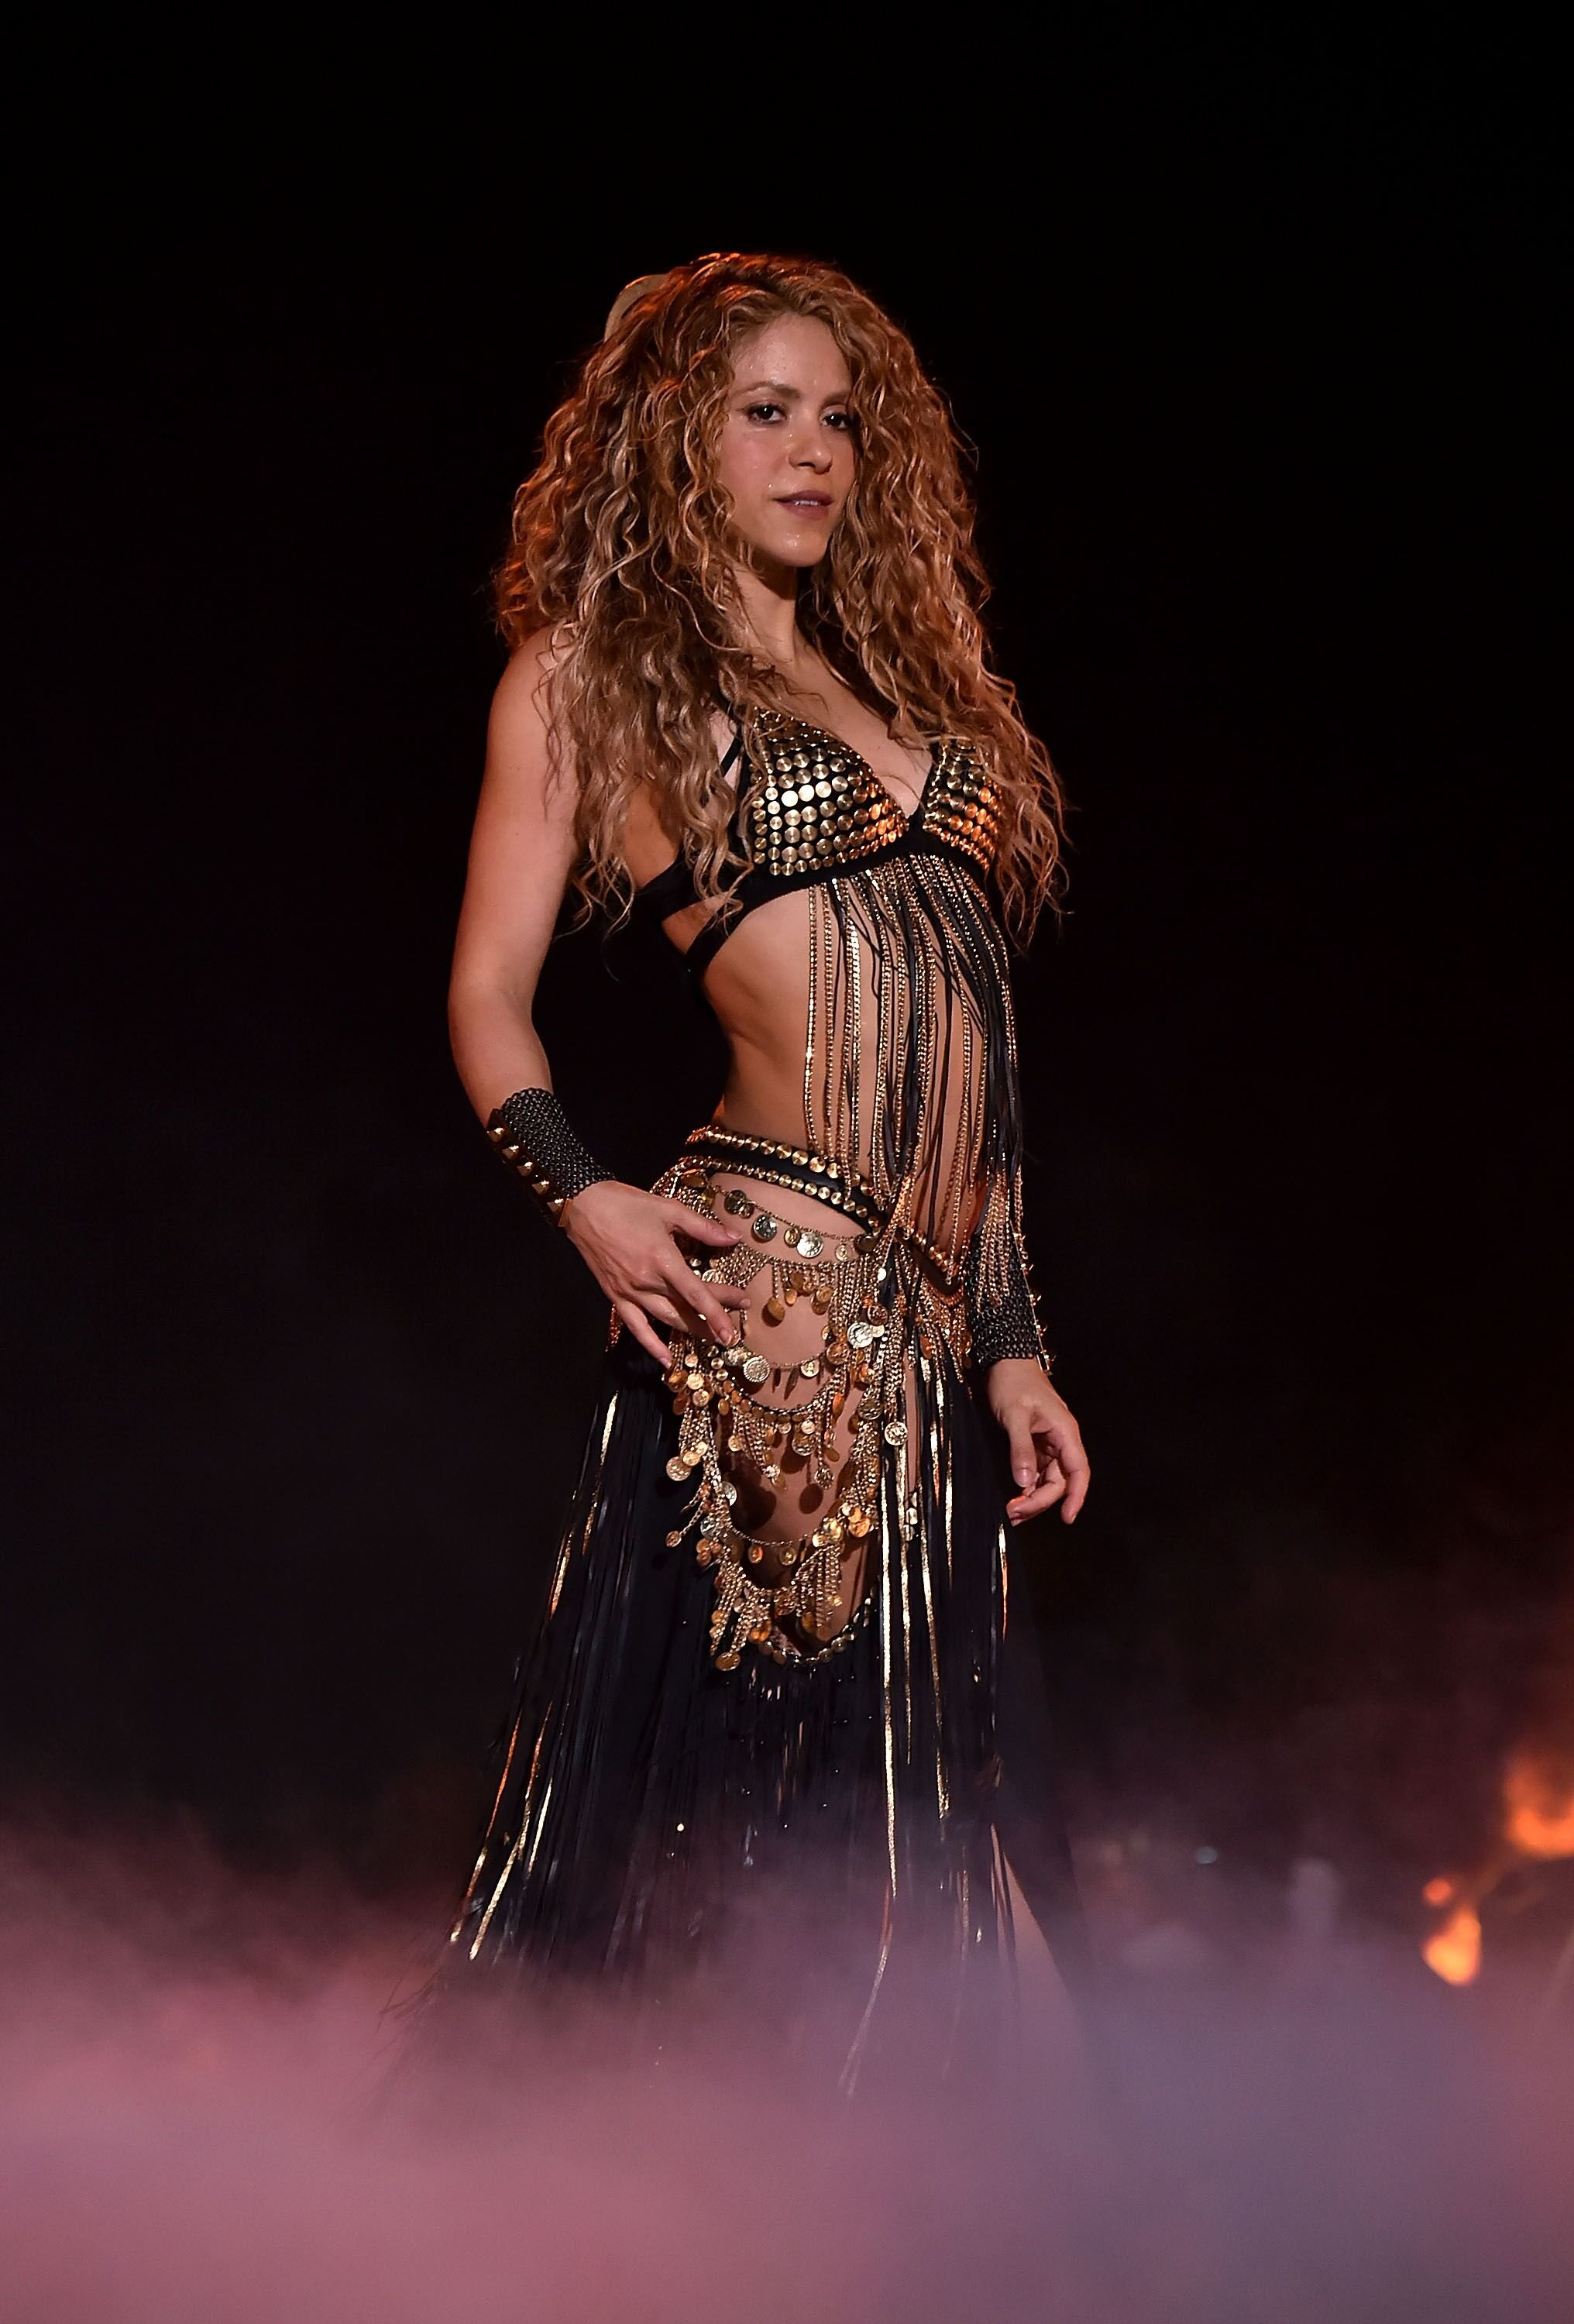 Shakira in concert/ Source: Getty Images